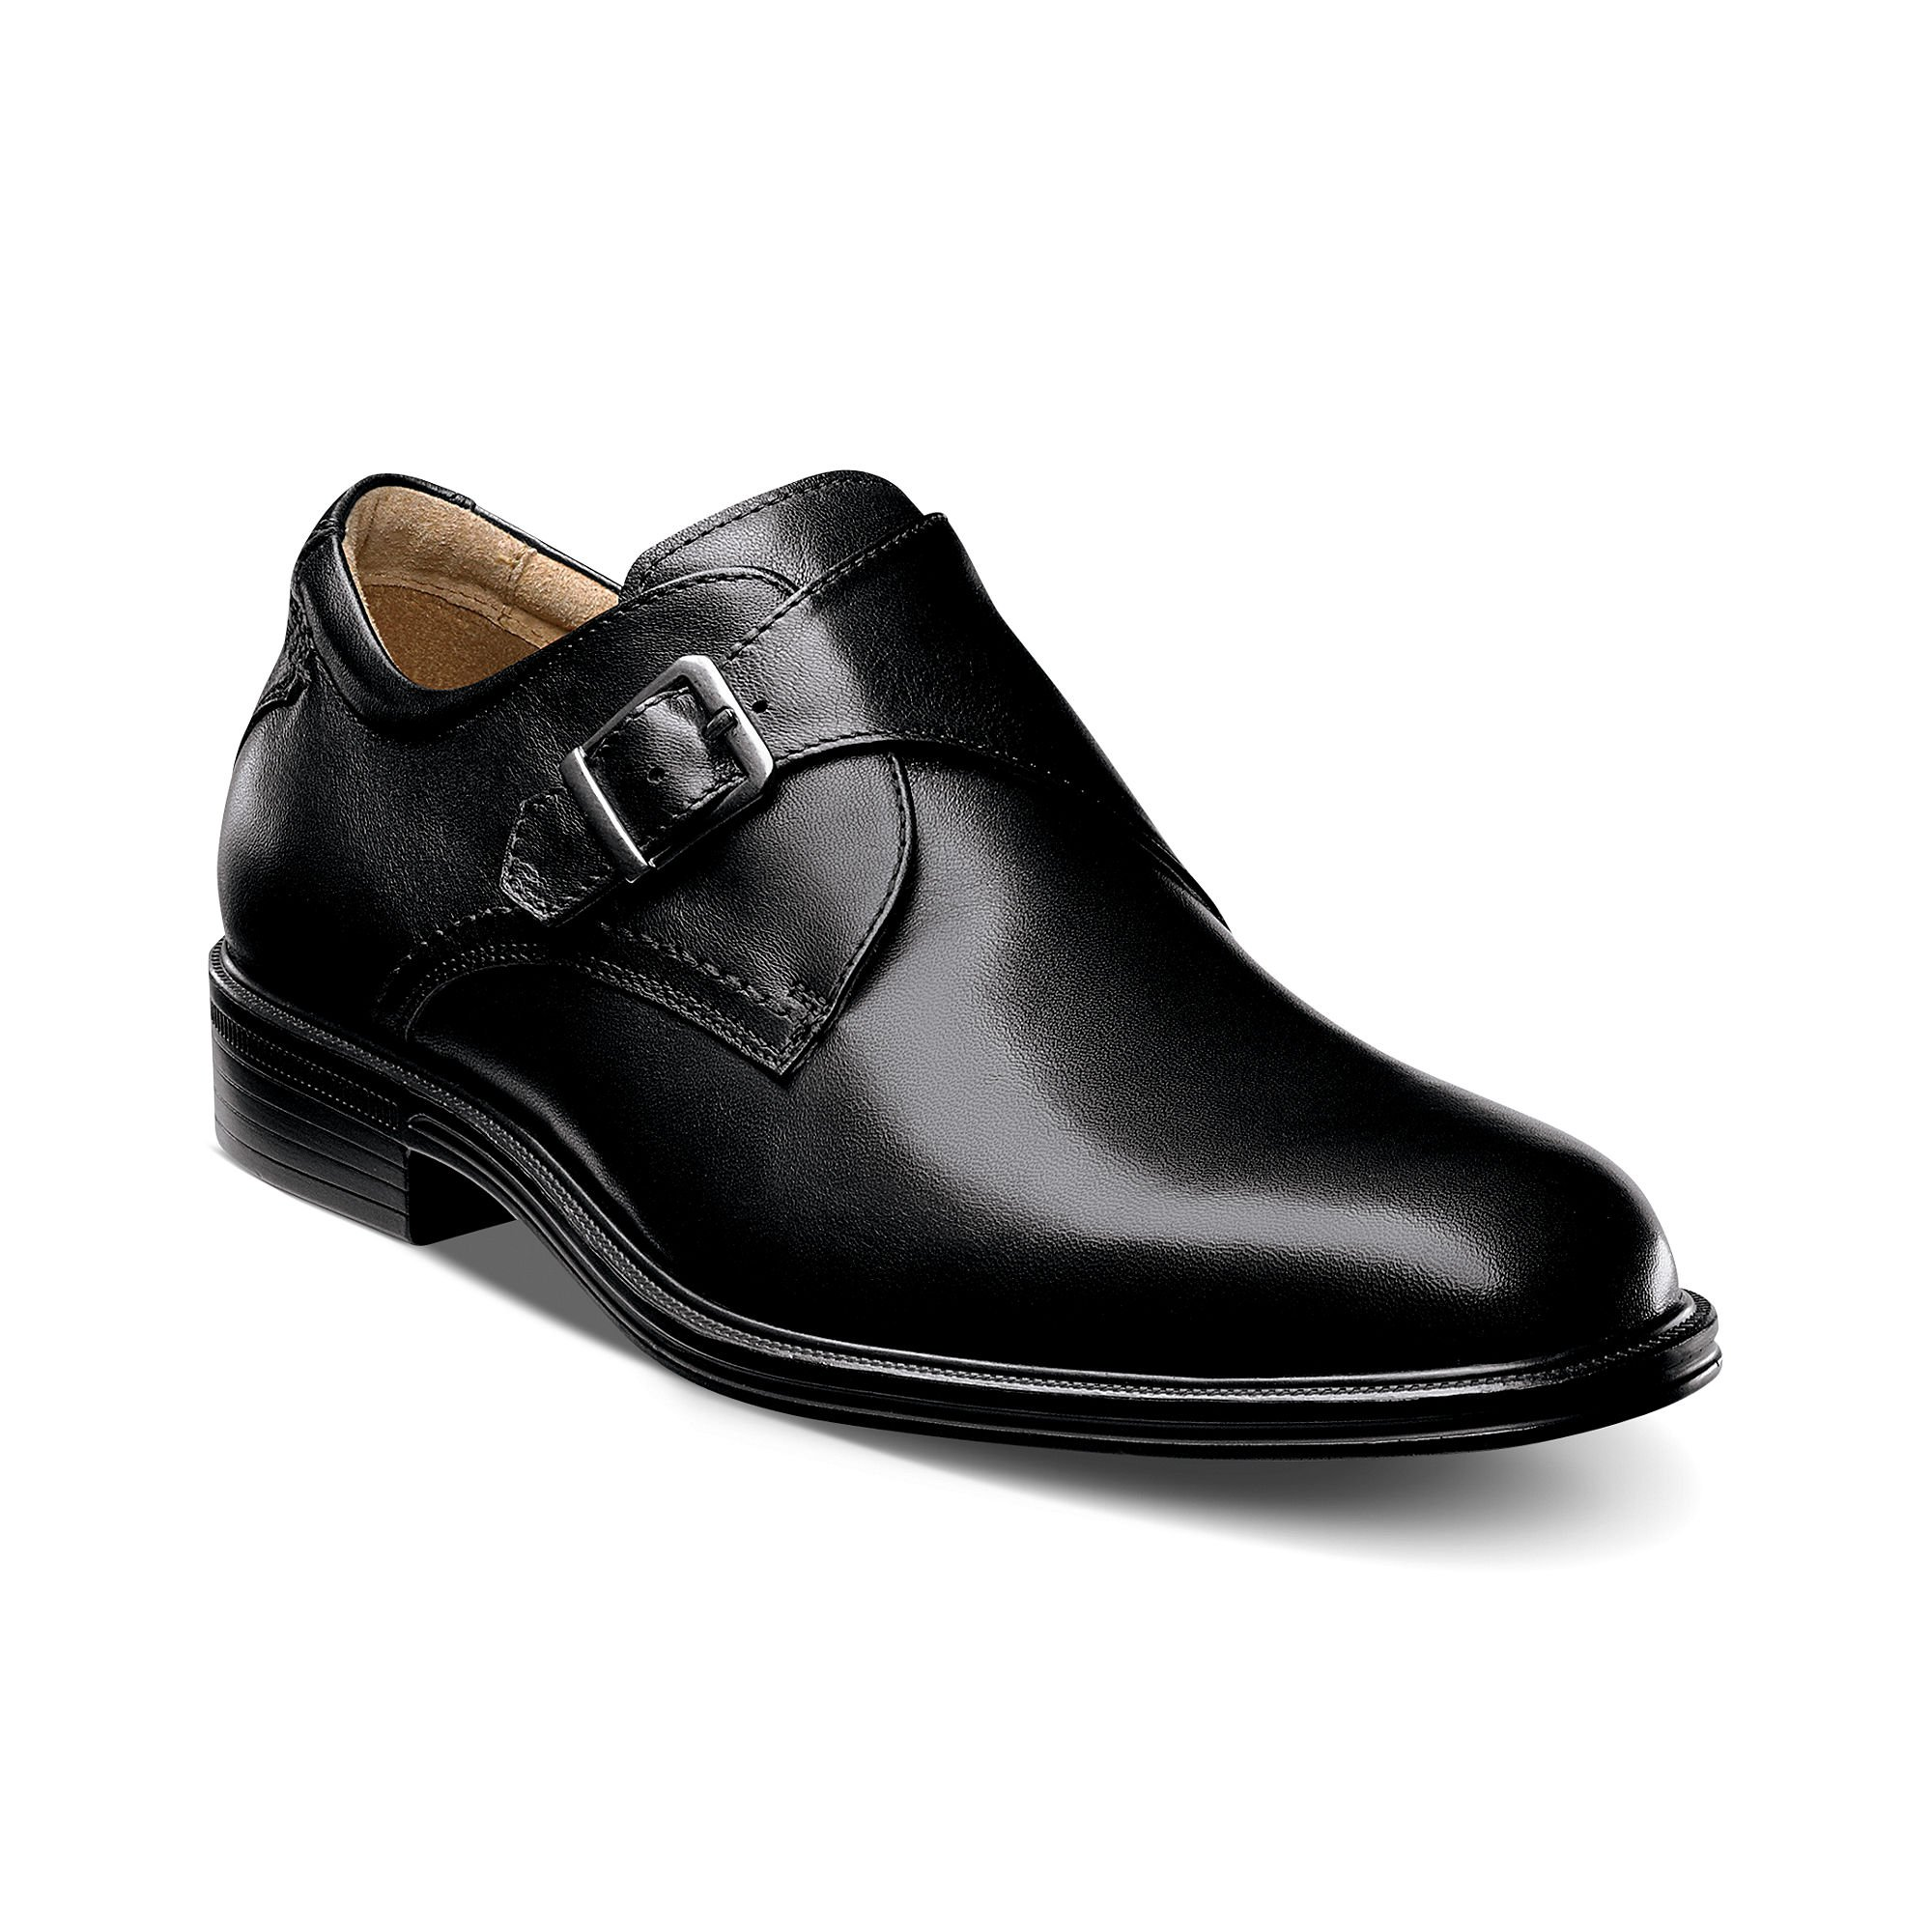 Florsheim Network Monk Strap Plain Toe Shoes In Black For Men Lyst